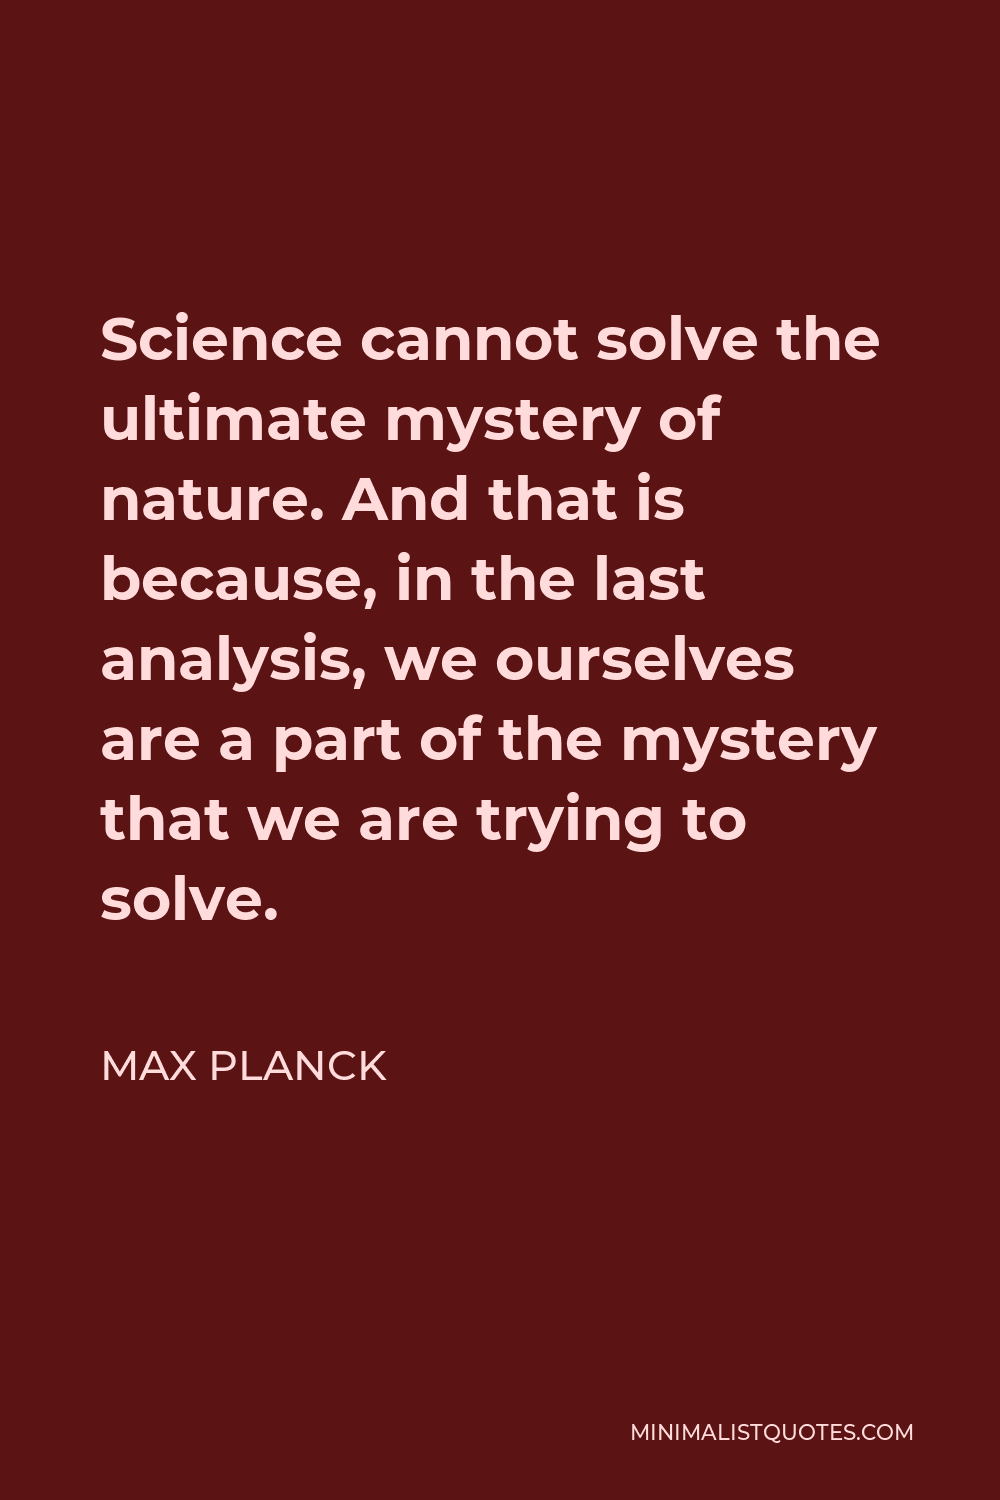 Max Planck Quote - Science cannot solve the ultimate mystery of nature. And that is because, in the last analysis, we ourselves are a part of the mystery that we are trying to solve.